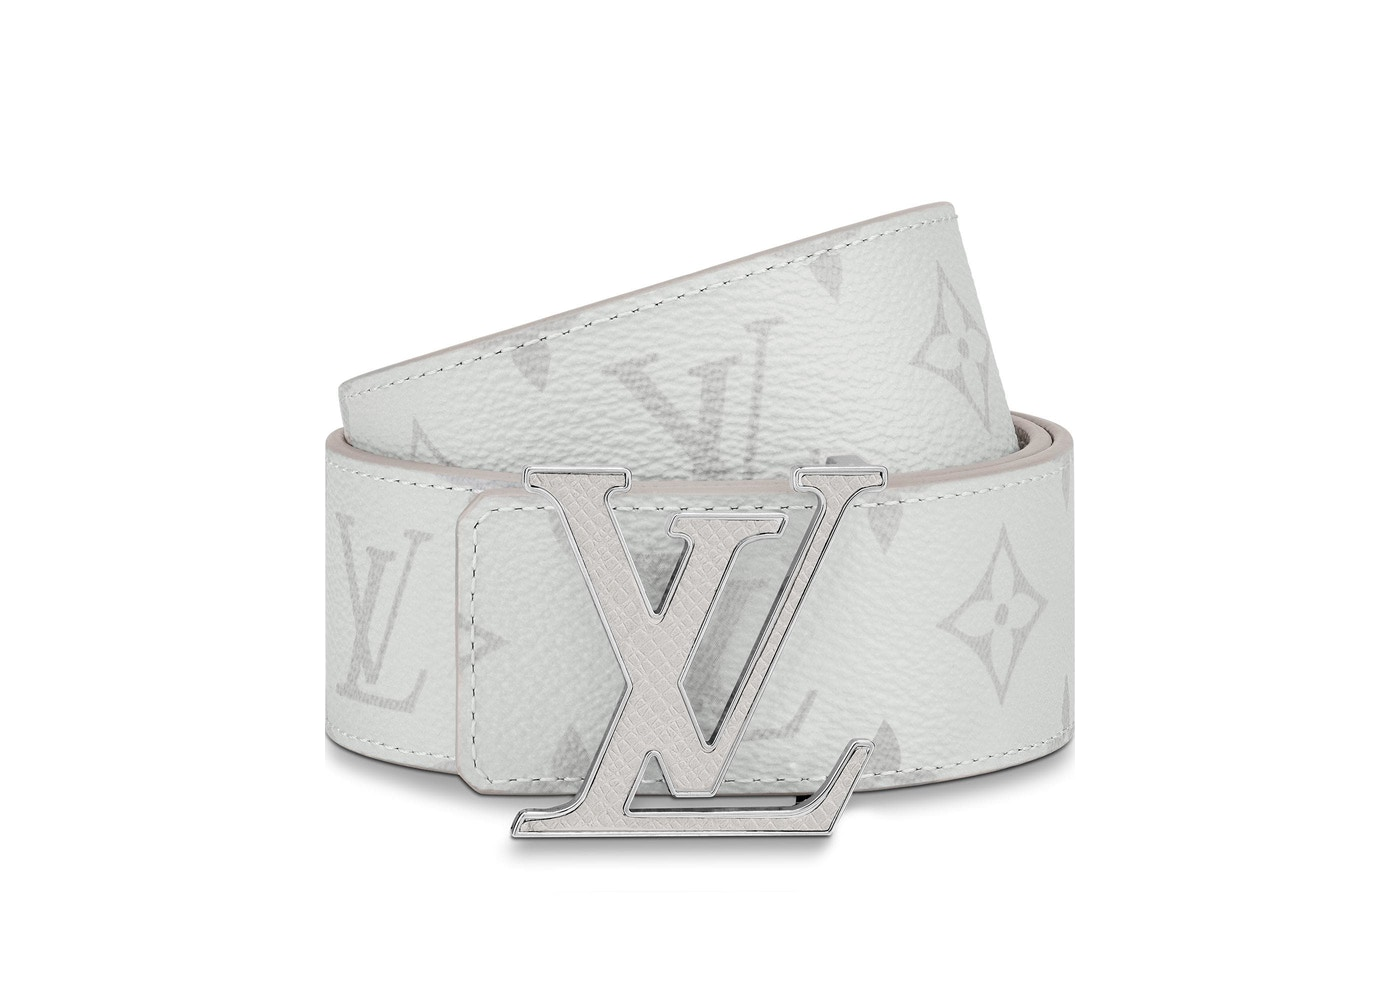 266f6851c563 Louis Vuitton LV Initiales Reversible Belt Monogram Eclipse Taiga 40MM  White. Monogram Eclipse Taiga 40MM White